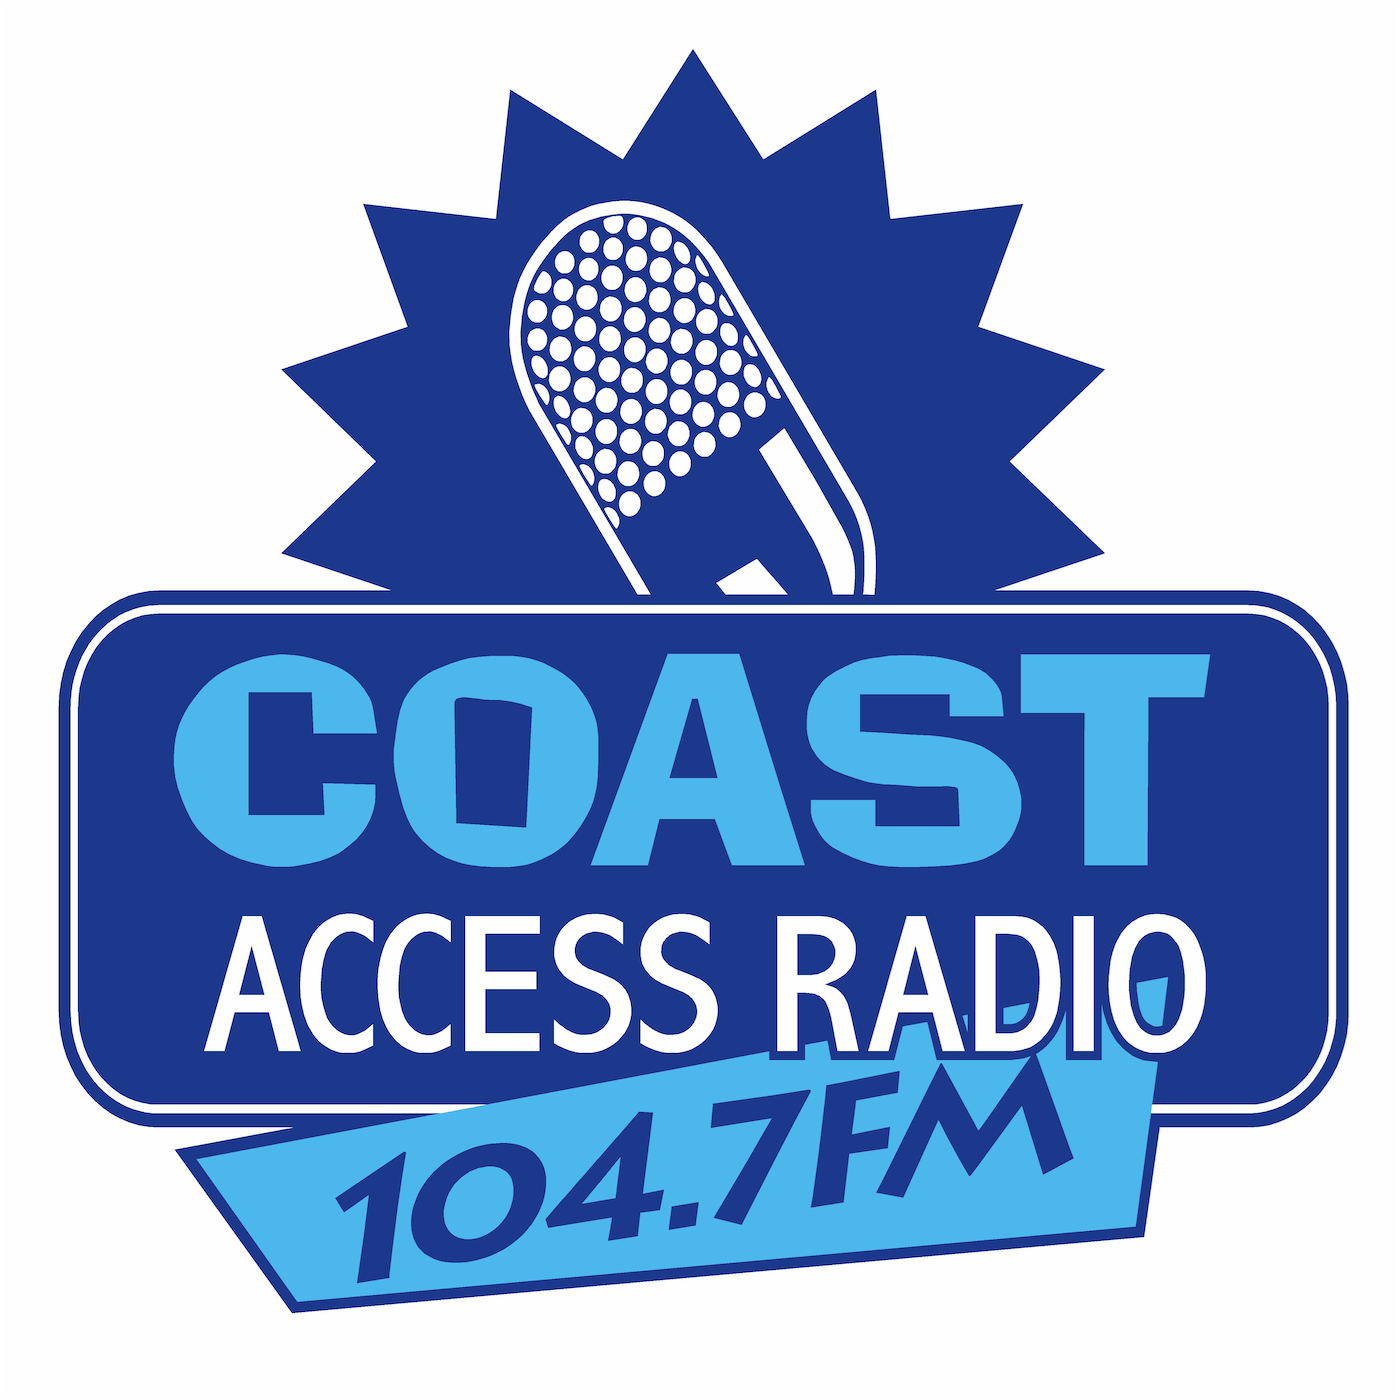 https://cdn.accessradio.org/StationFolder/coast/Images/coast access logo3.png